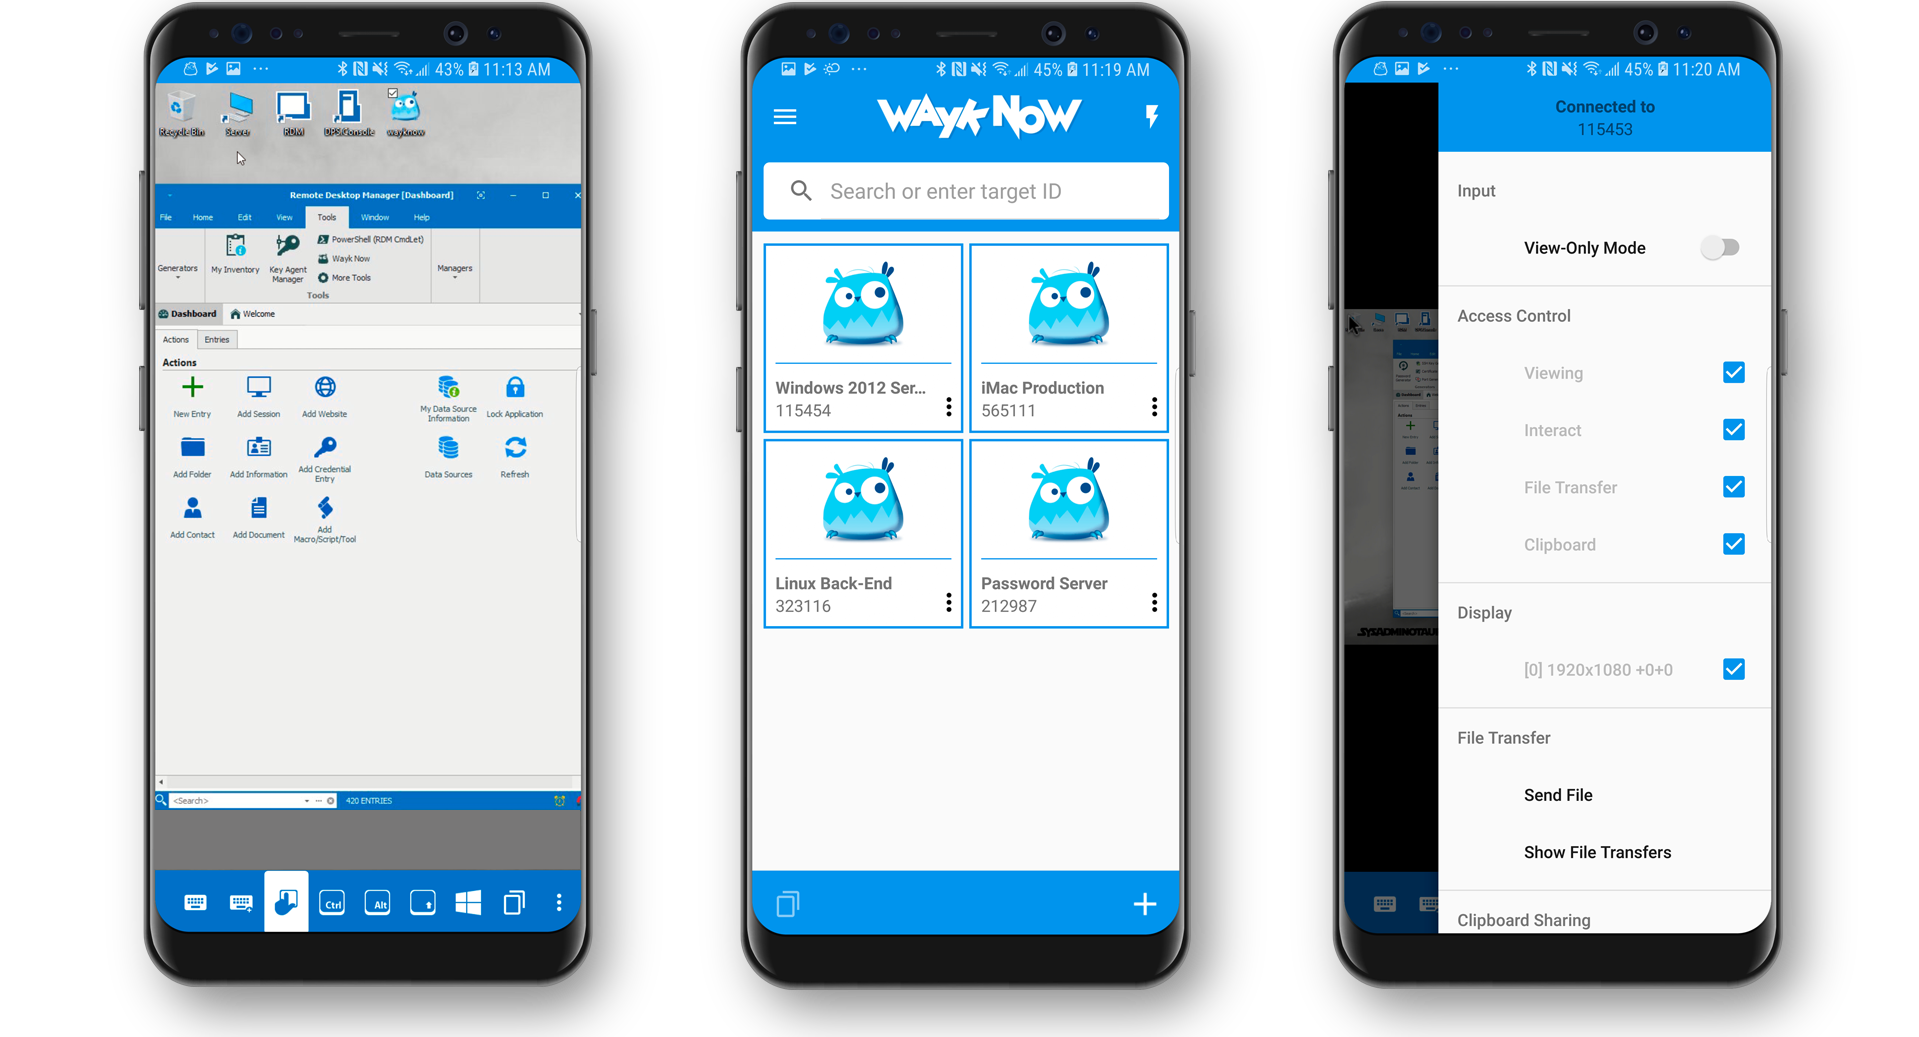 Remotely Access Multiple Devices from Your Android Device - Wayk Now